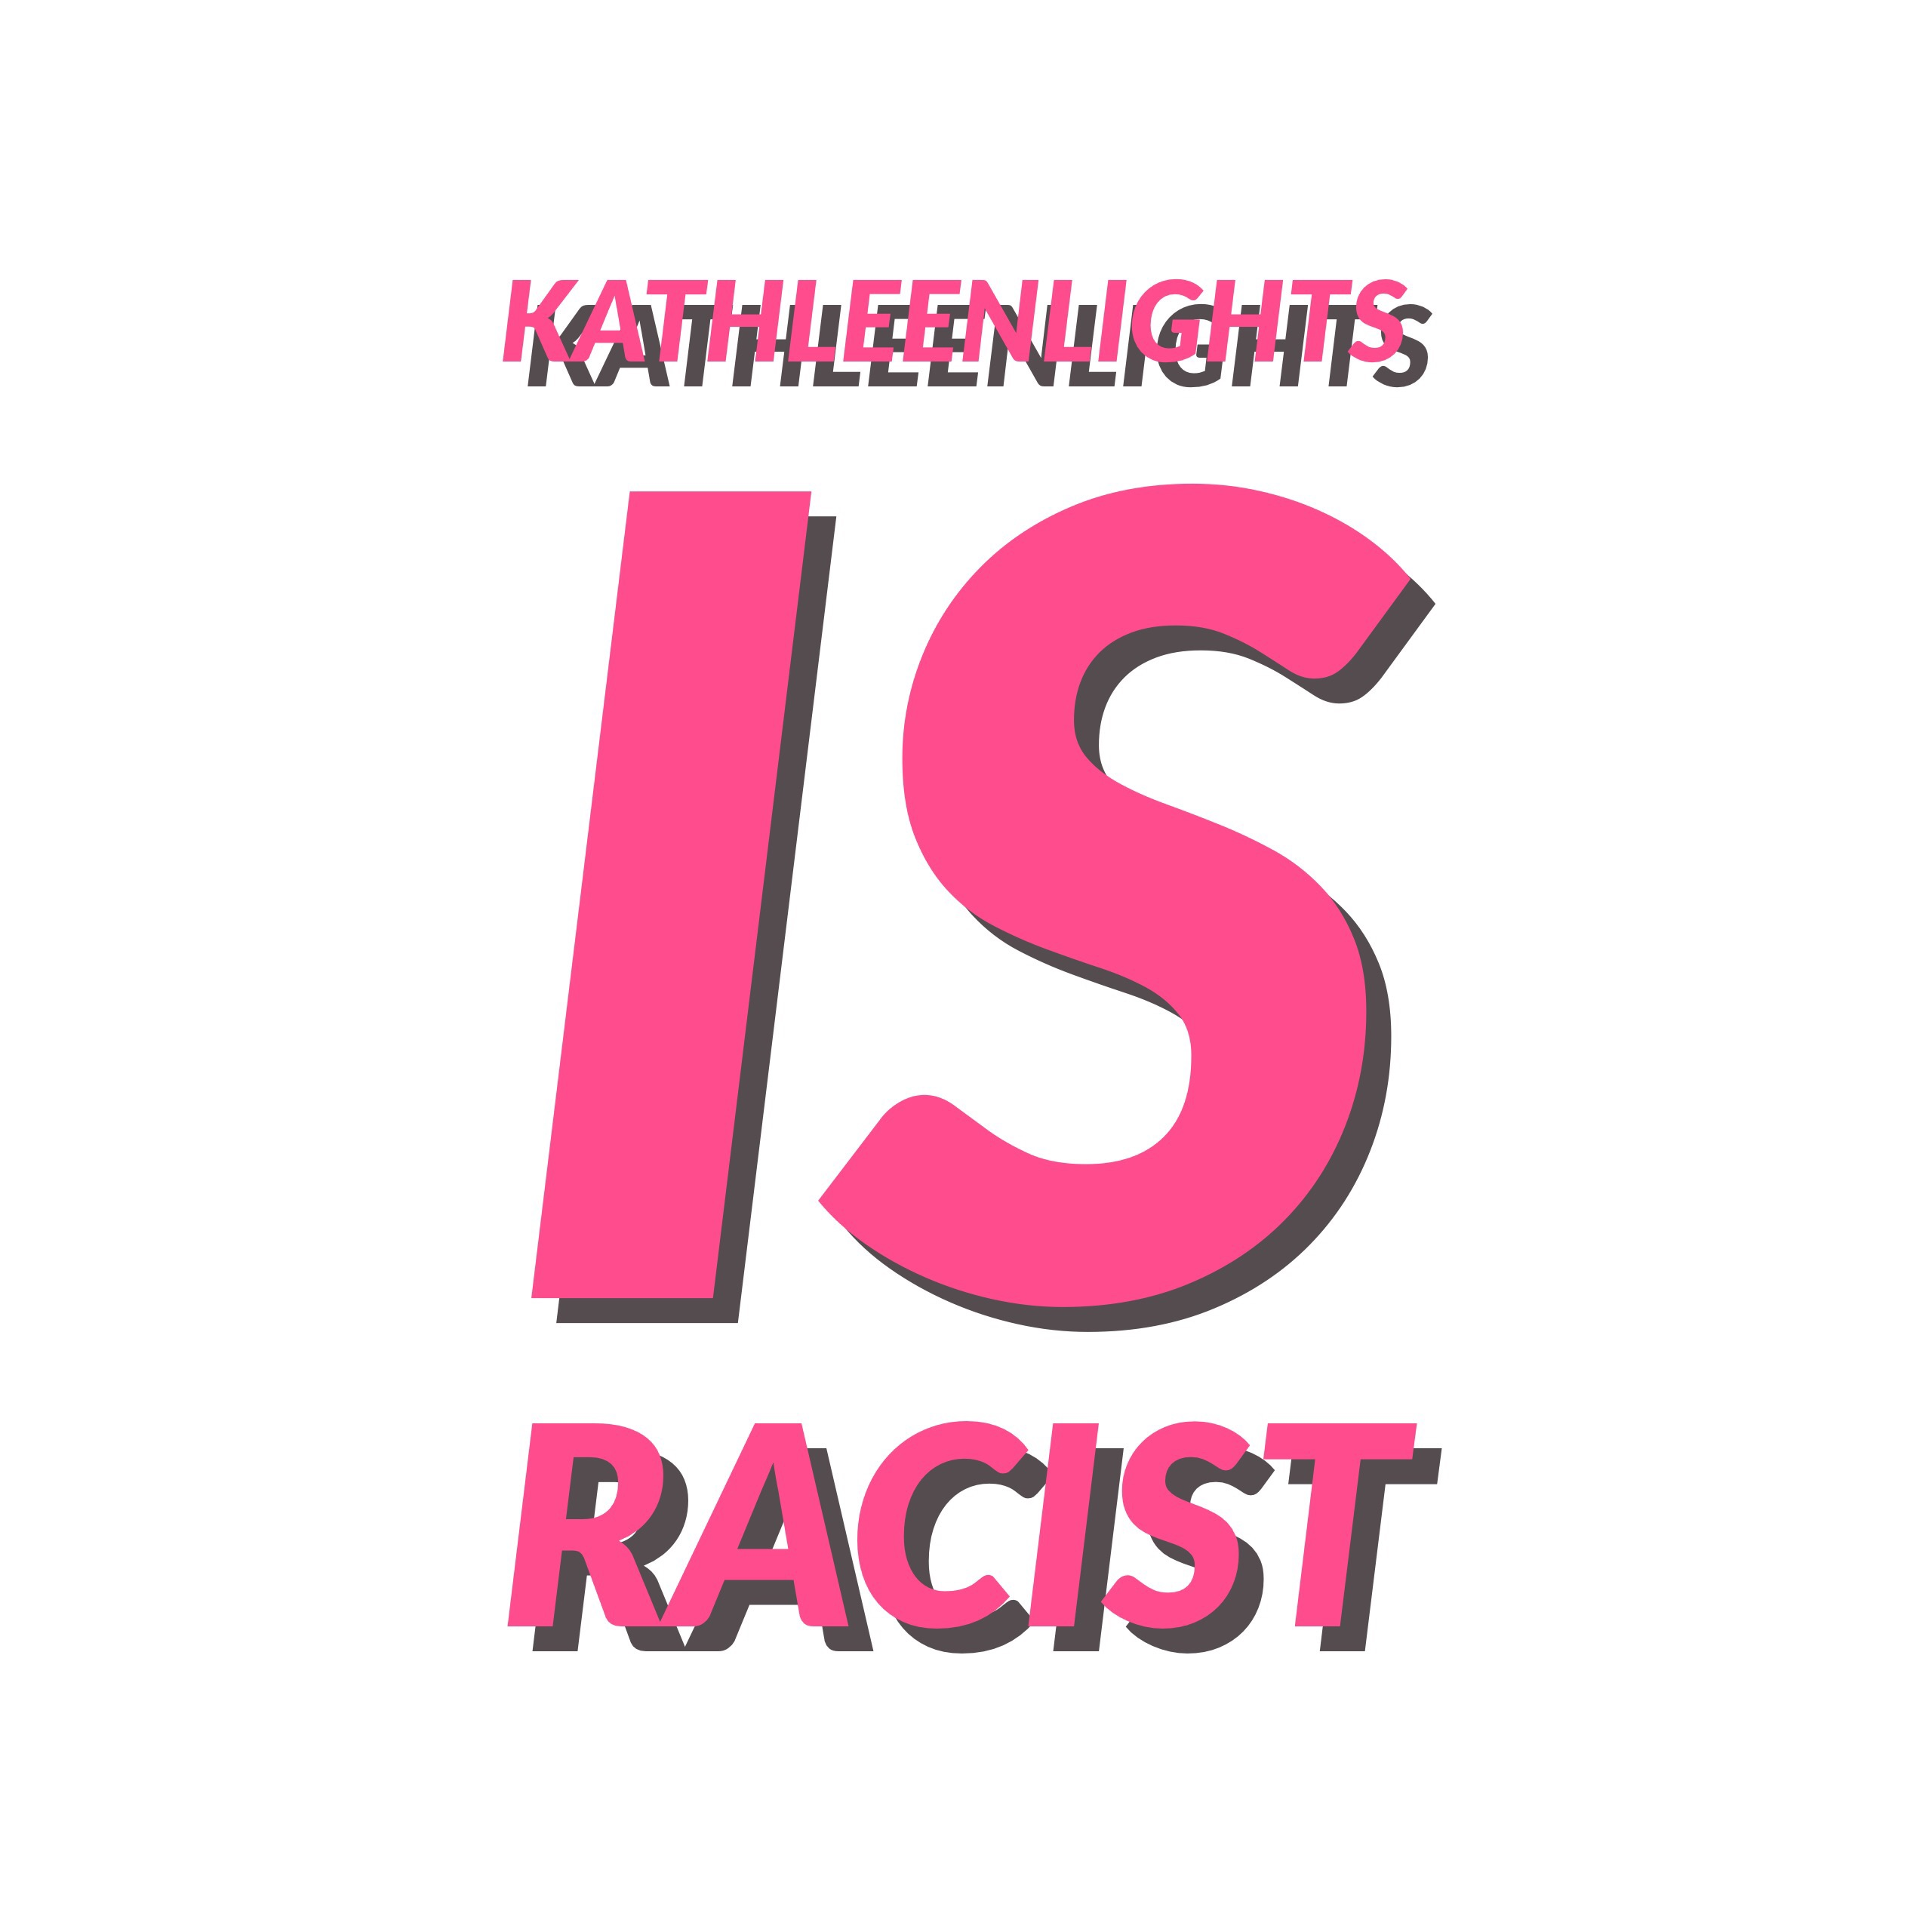 Racism in the Beauty Industry #1 | Kathleenlights is Racist